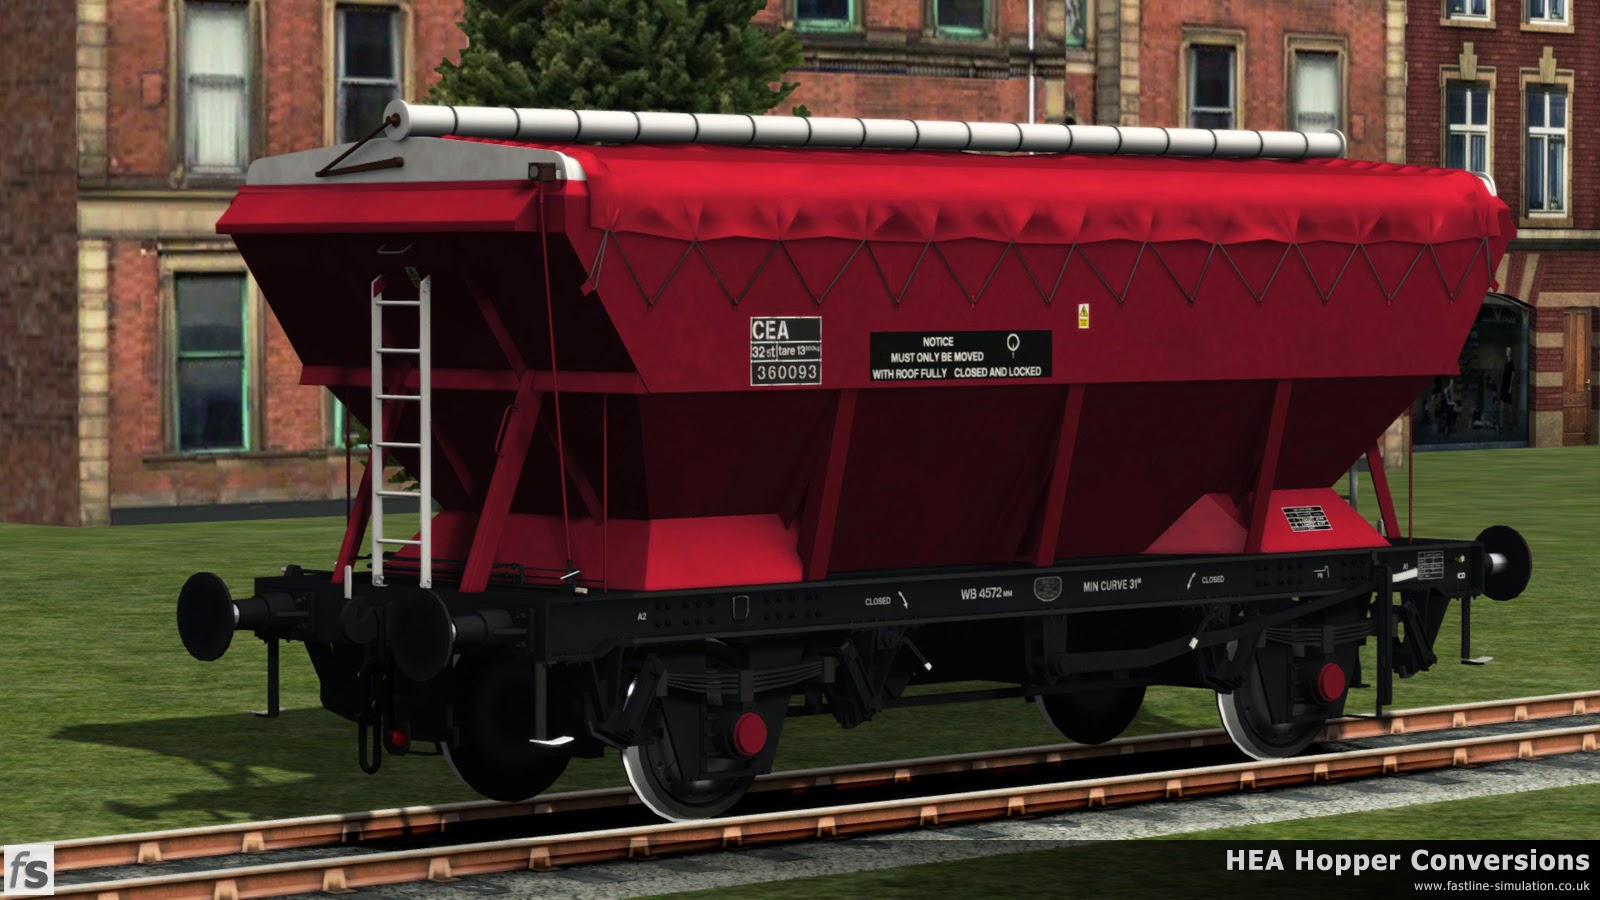 Fastline Simulation - HEA Conversions: This version of red livery on the CEA hopper feels like a bit of a spruce up hybrid of the original Loadhaul livery.